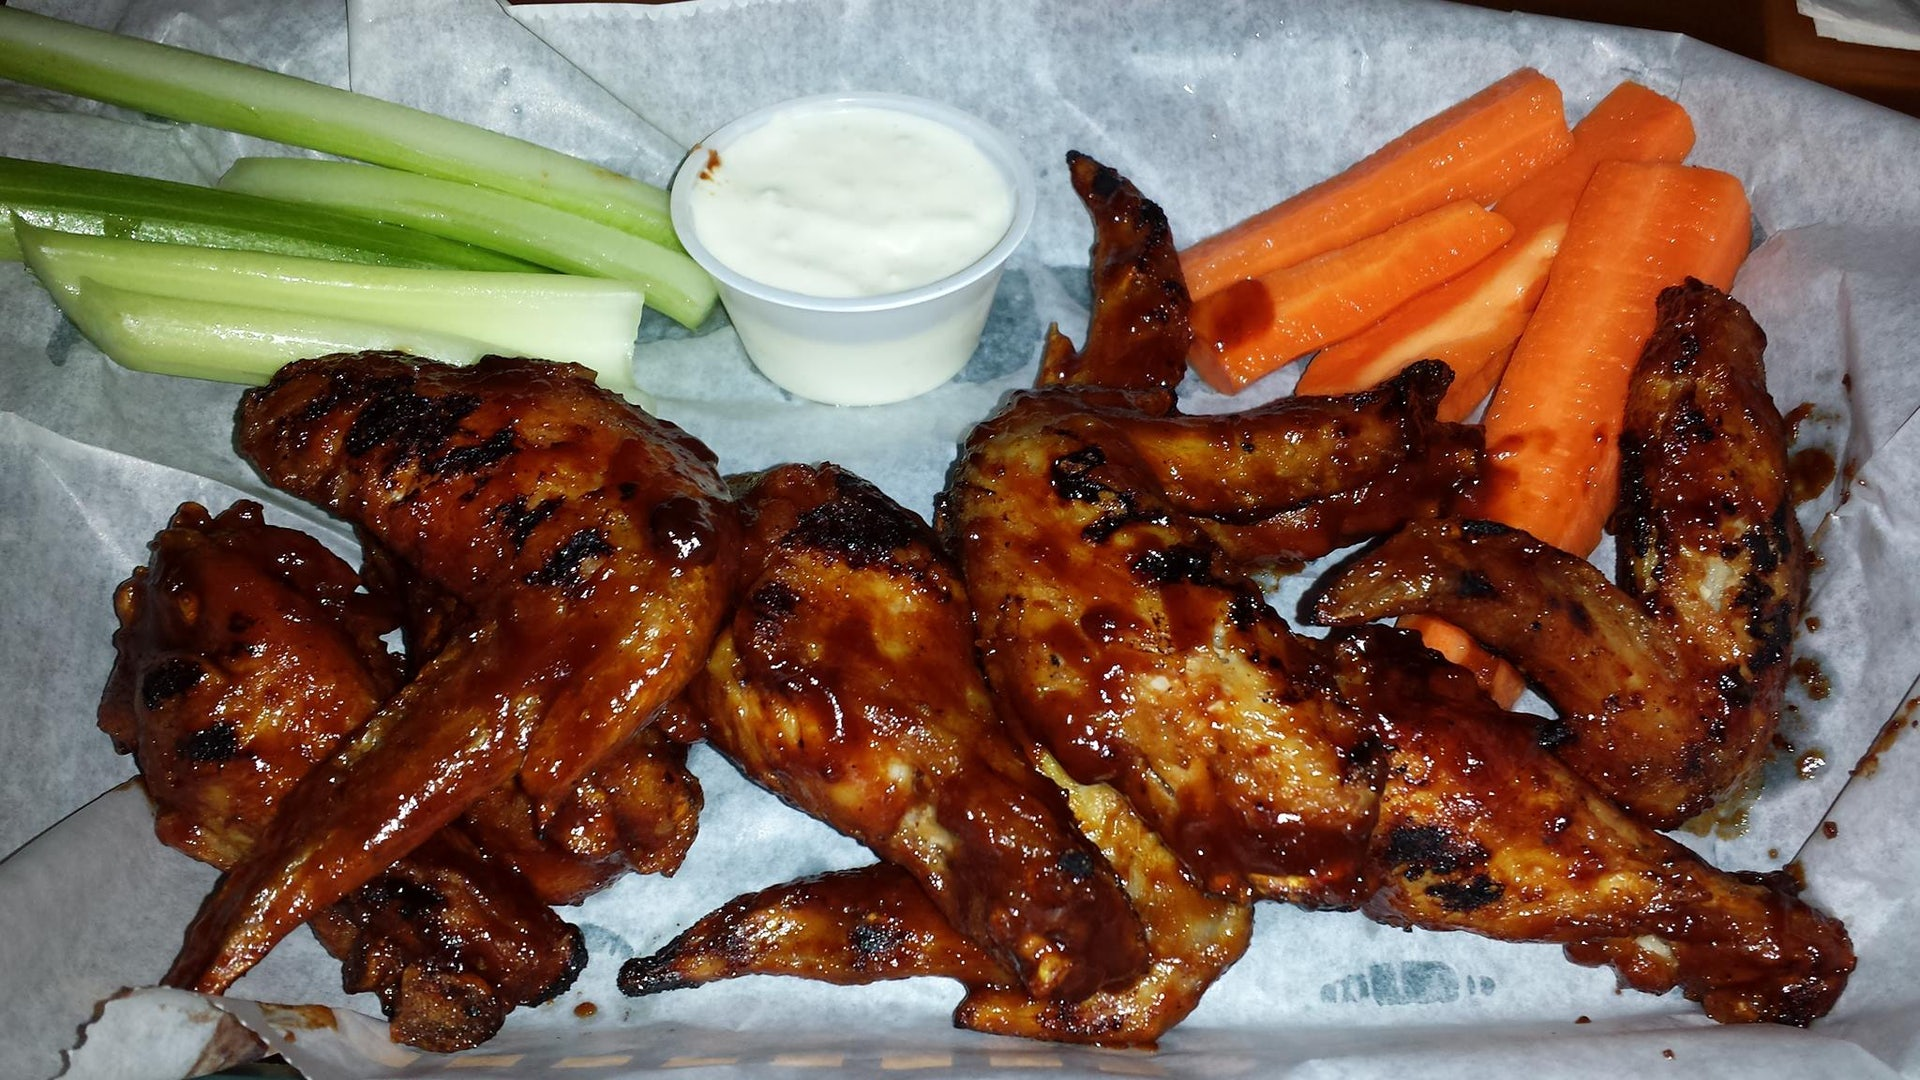 grilled chicken wings and vegetables at Corbett's Sports Bar & Grill